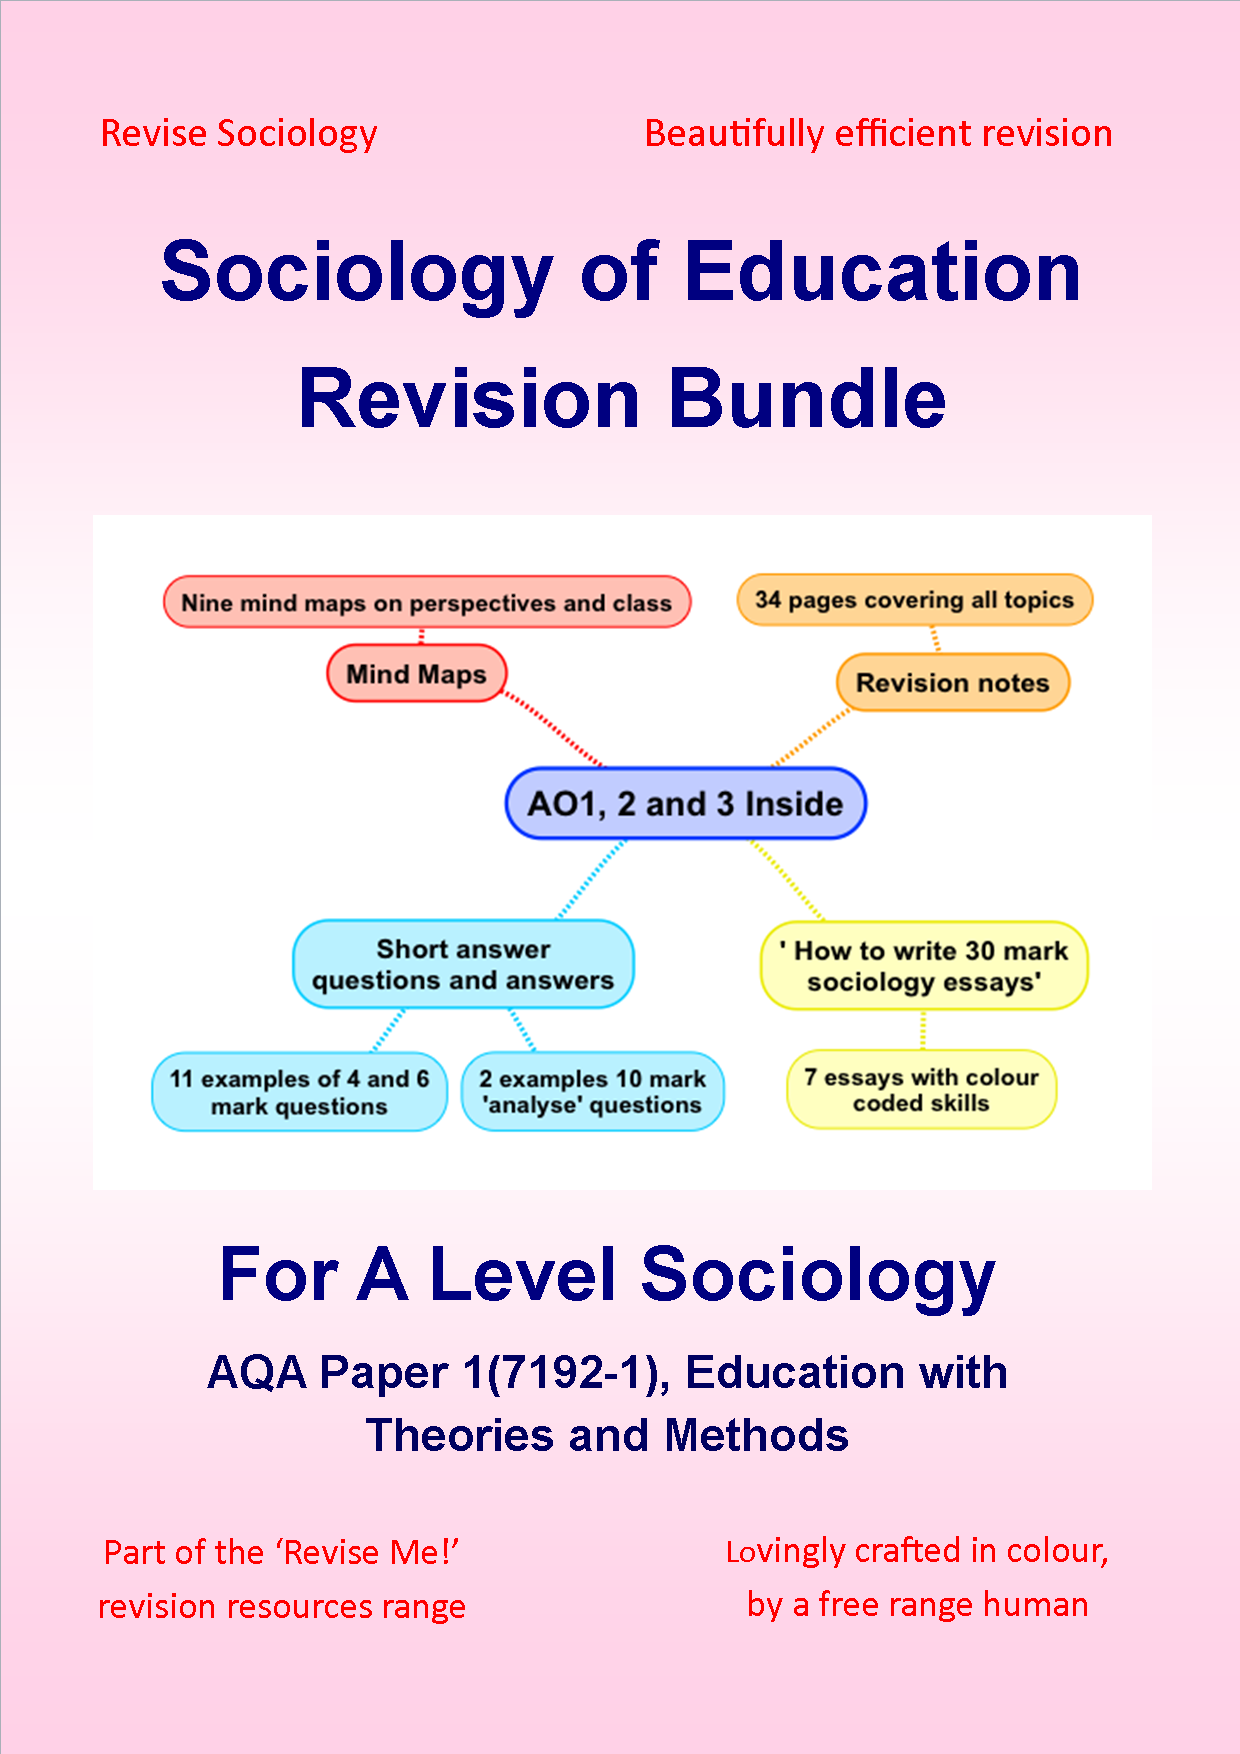 The main types of sociological research